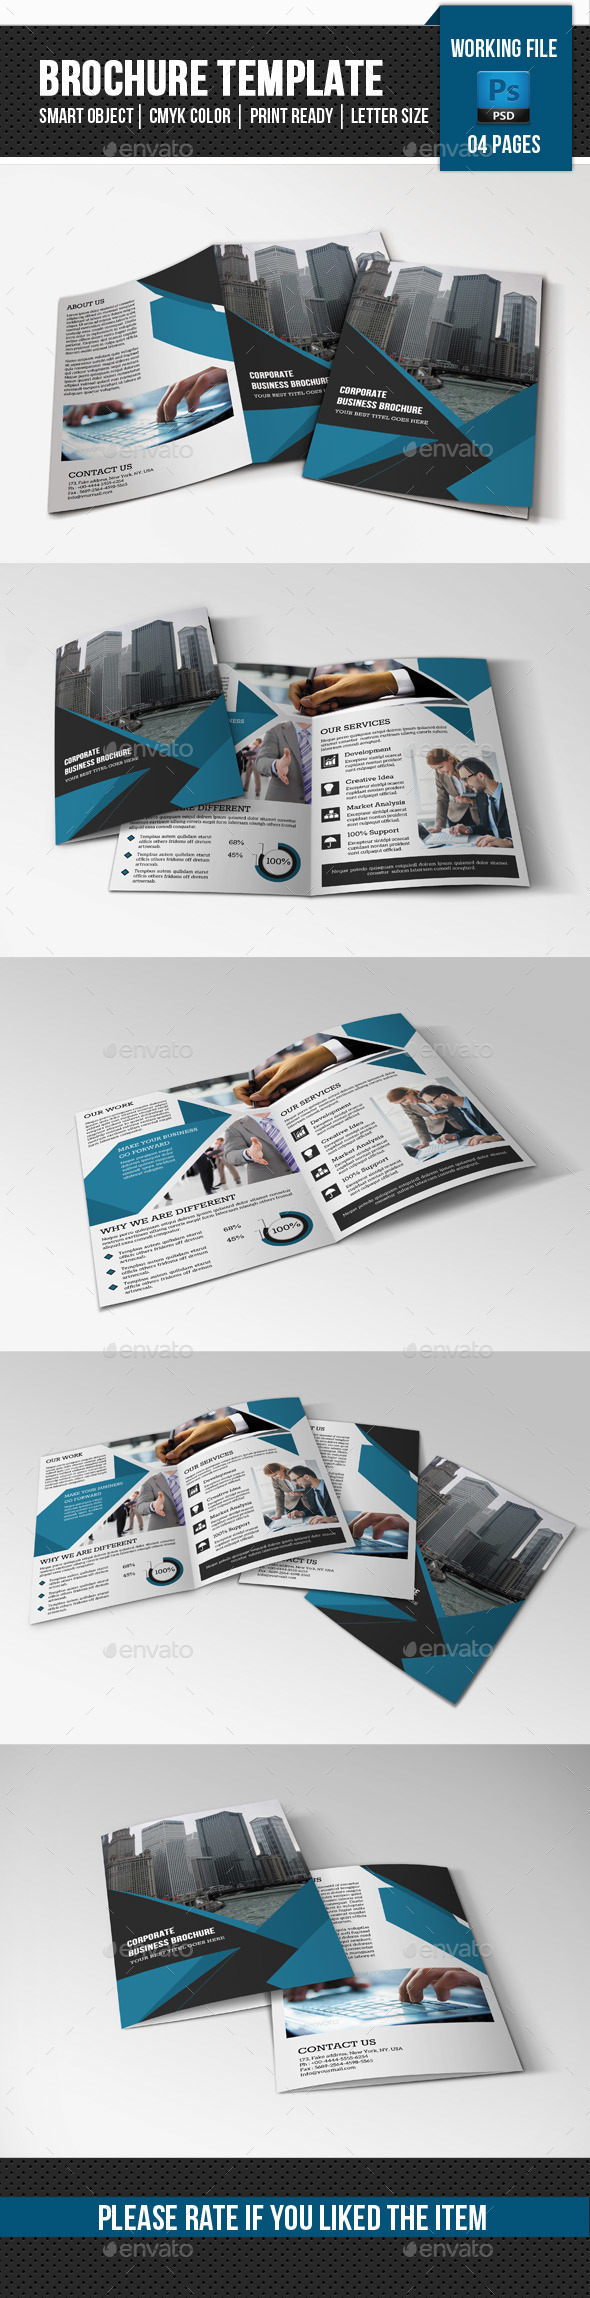 Business Brochure Template-V348 - Corporate Brochures